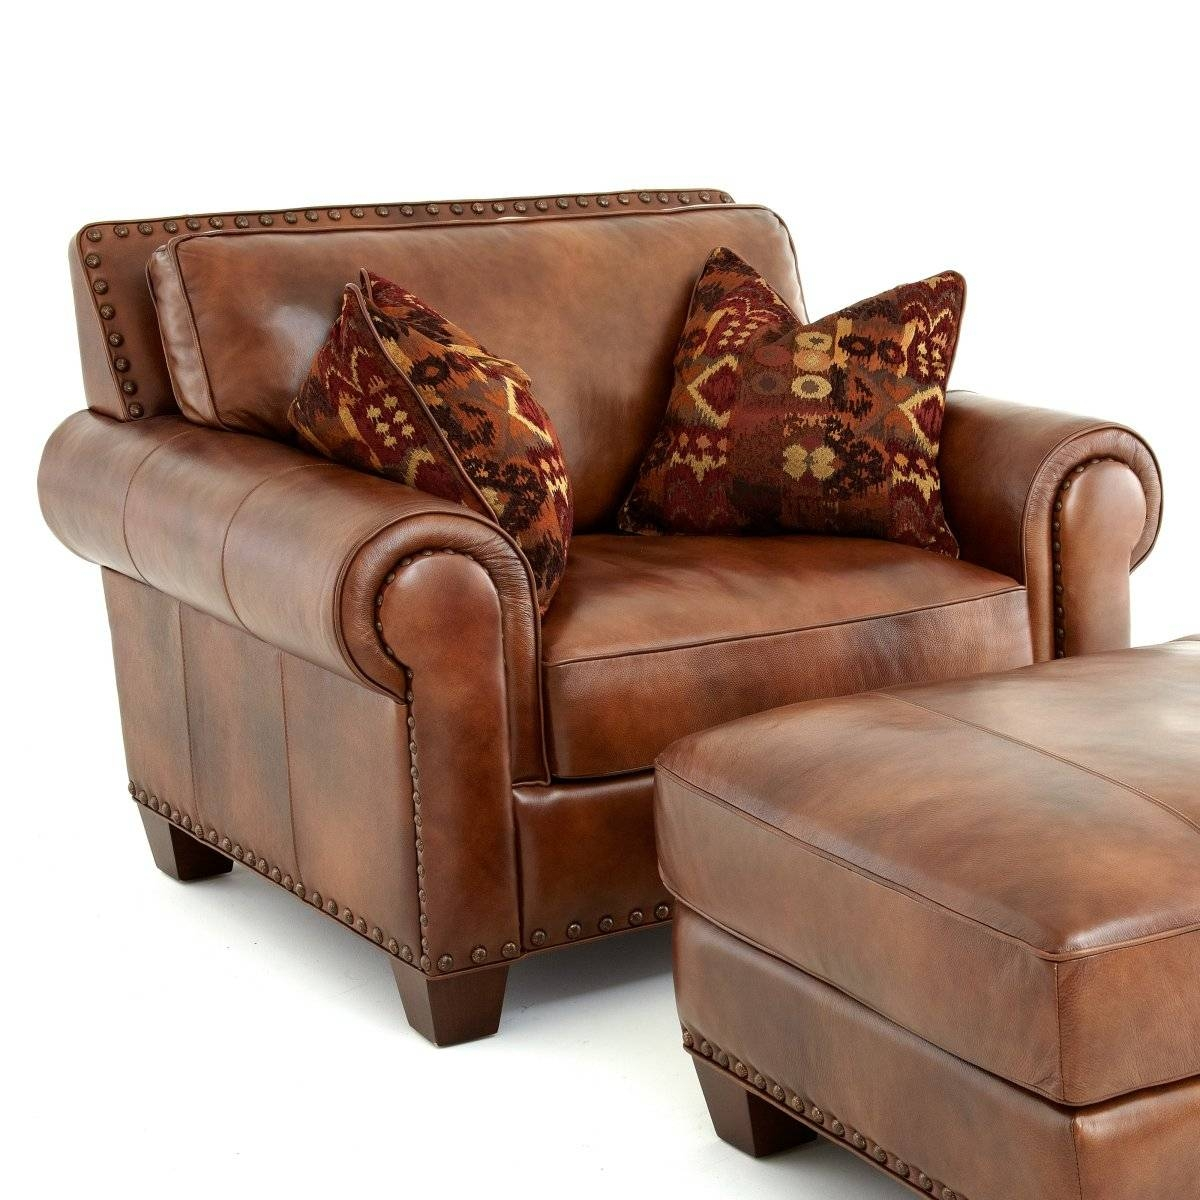 Everybody. Caramel Leather Sofa Wine Cellar Traditional With inside Leather Lounge Sofas (Image 6 of 30)